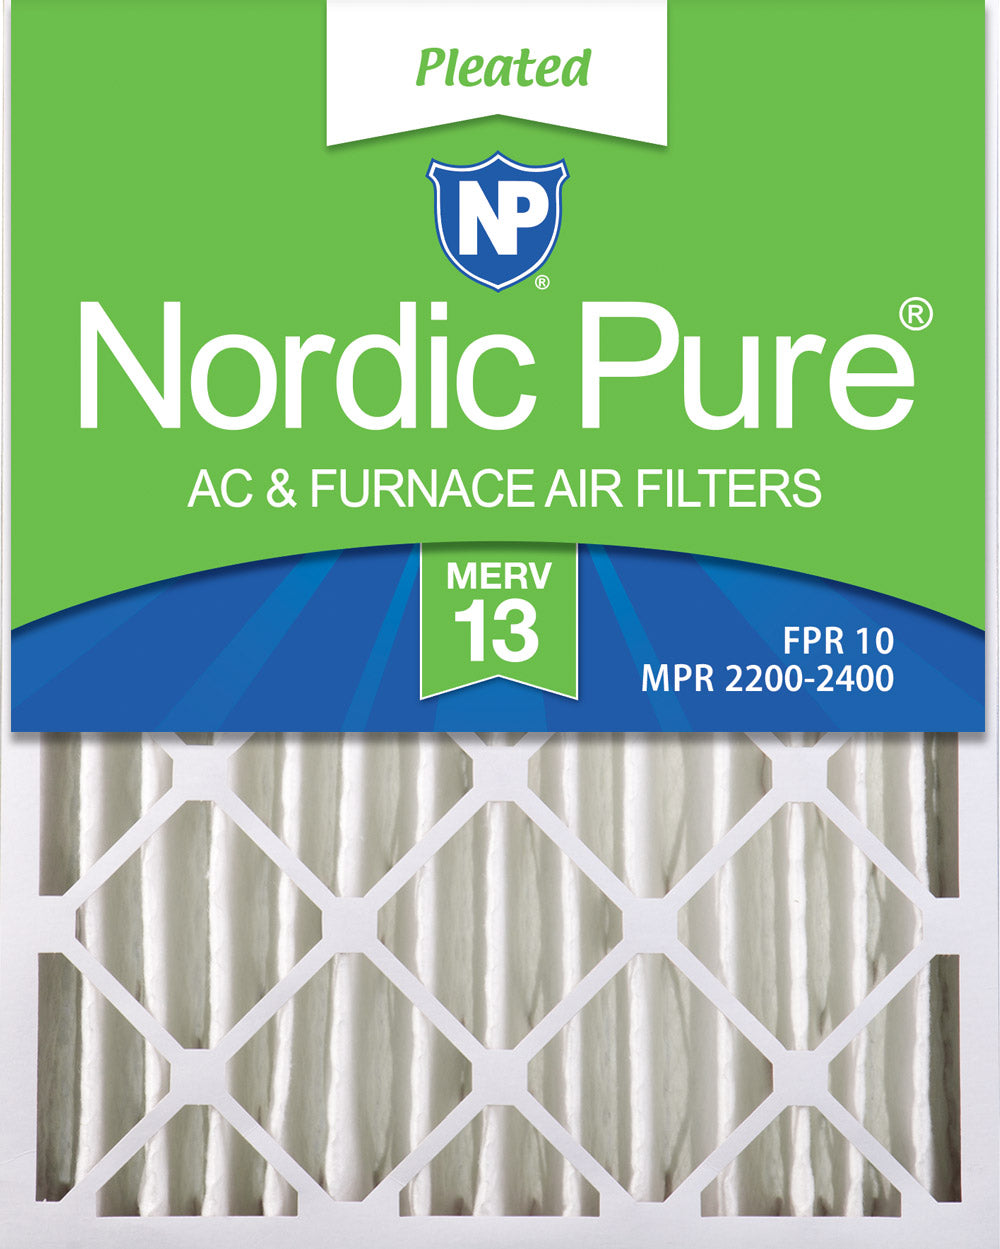 16x20x4 (3 5/8) Pleated MERV 13 Air Filters 6 Pack